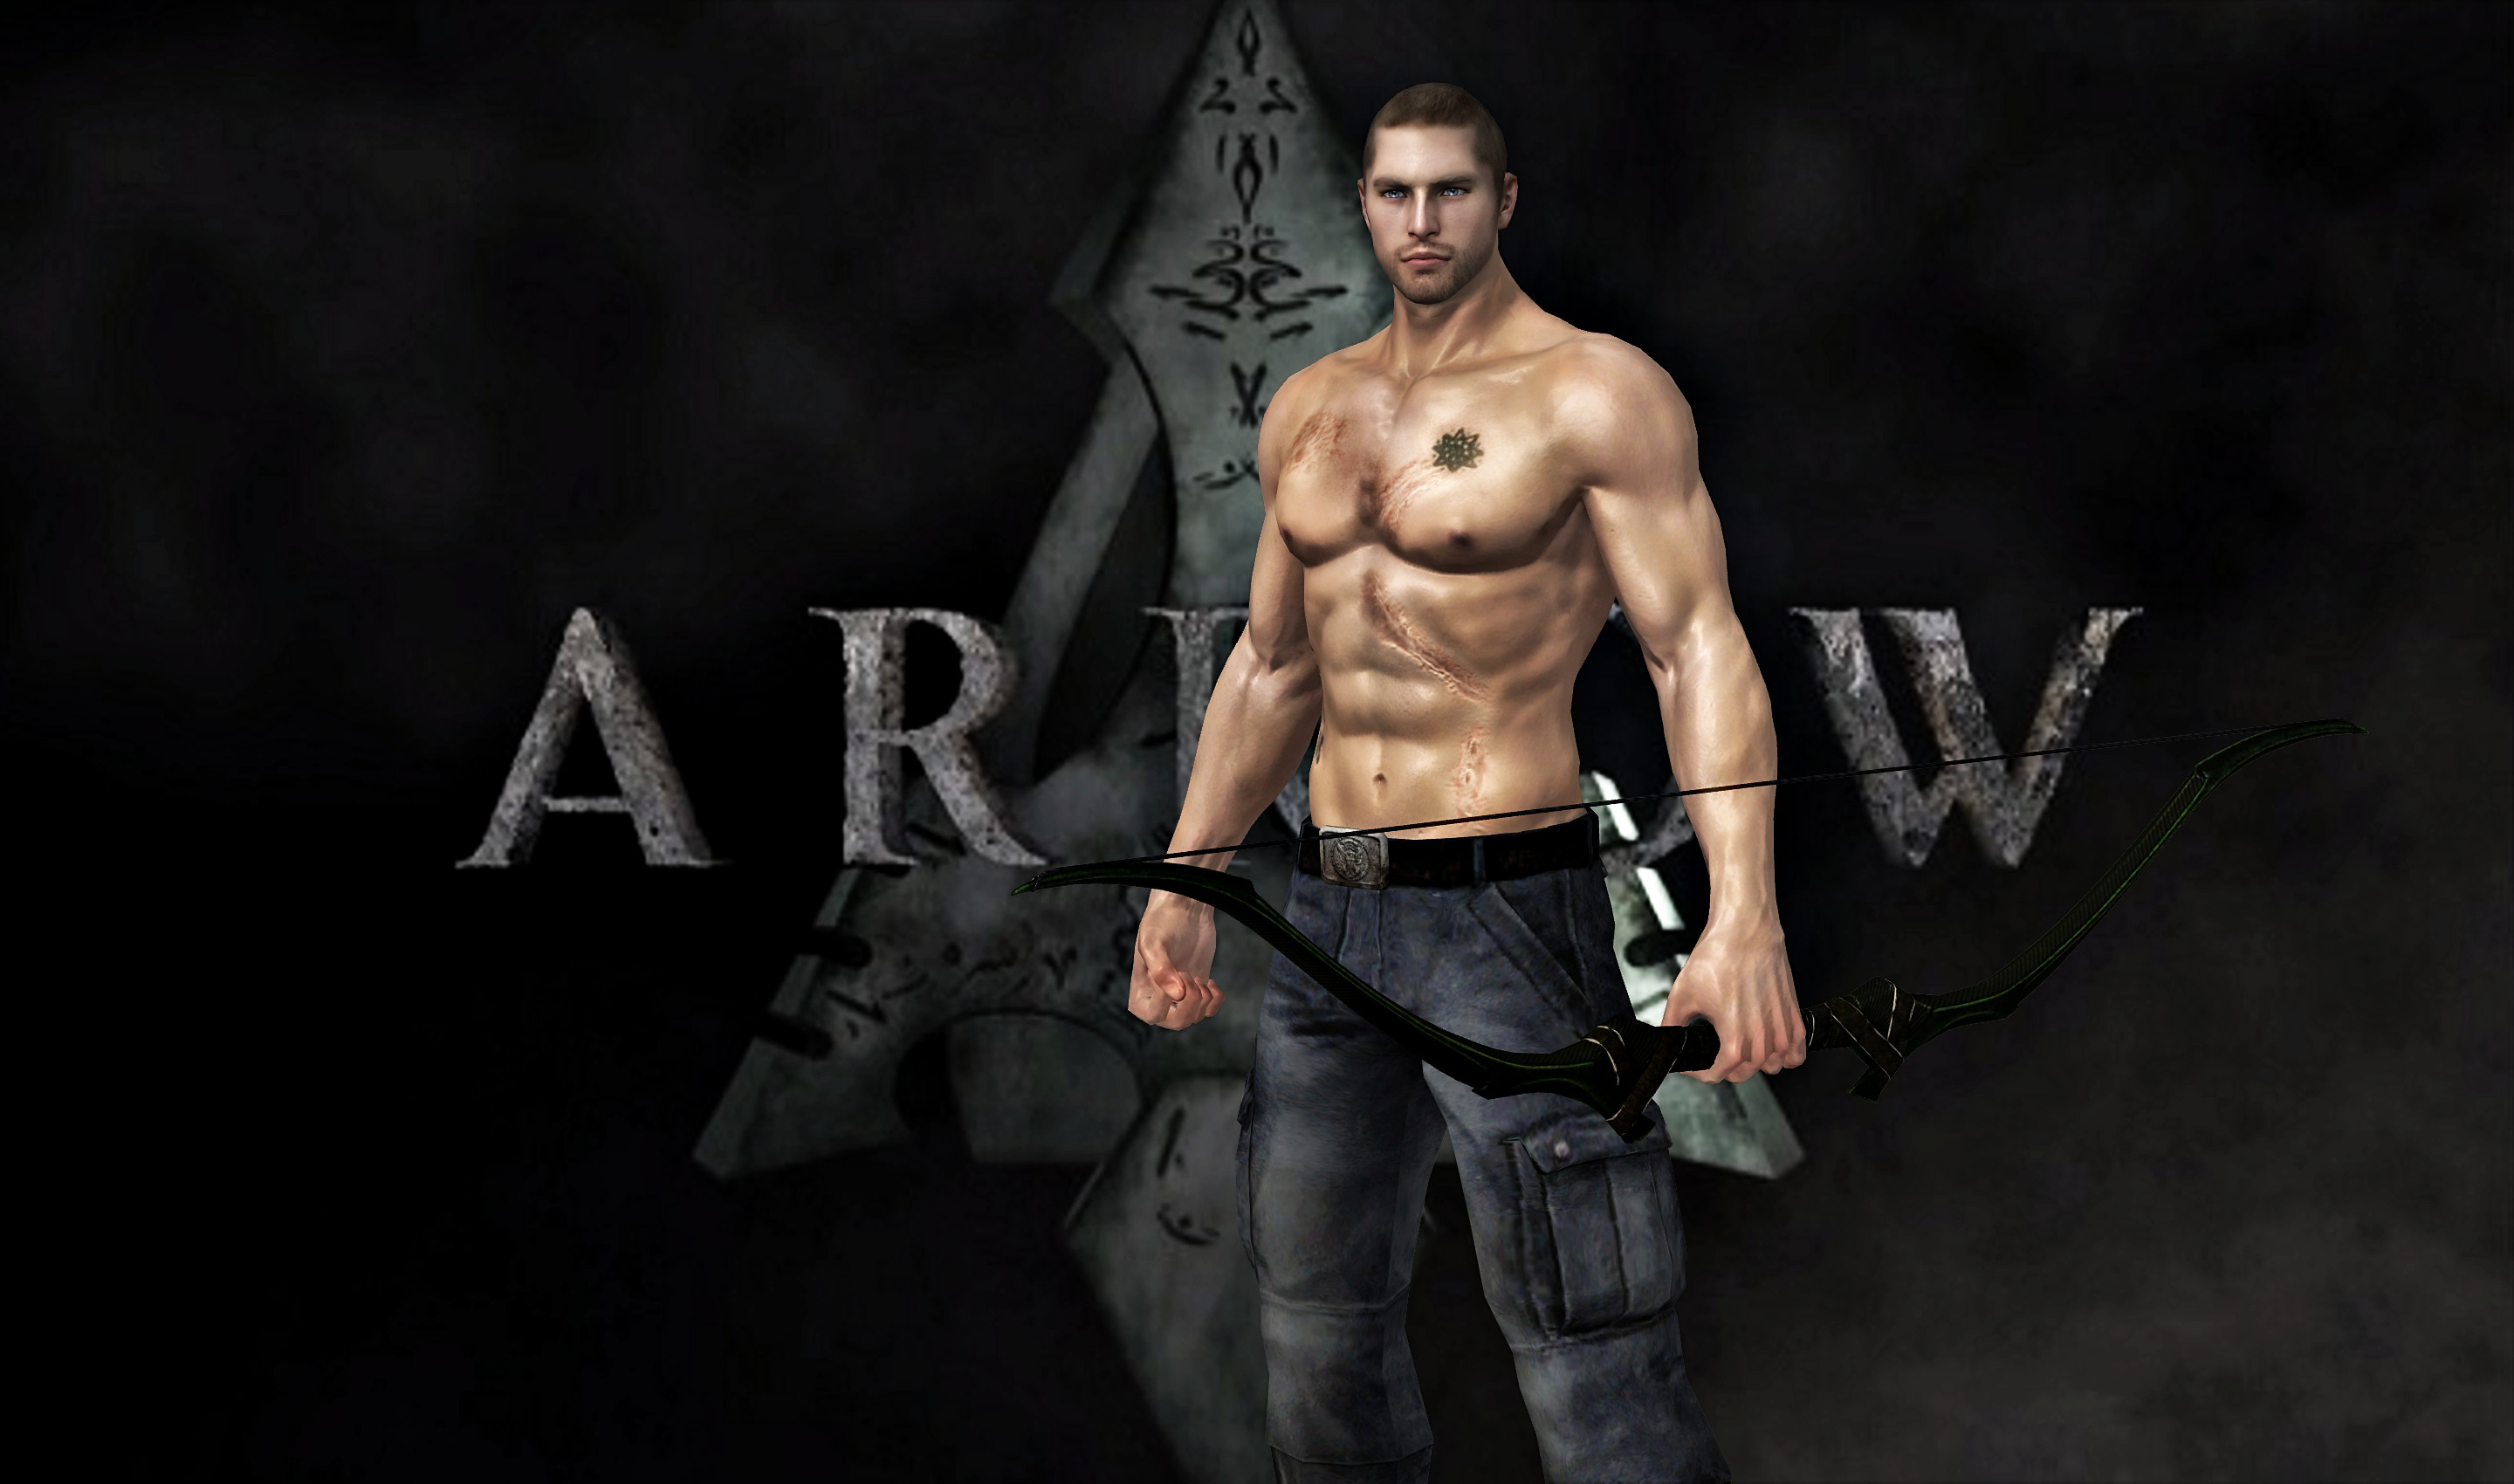 Download Free Arrow Wallpaper for Android